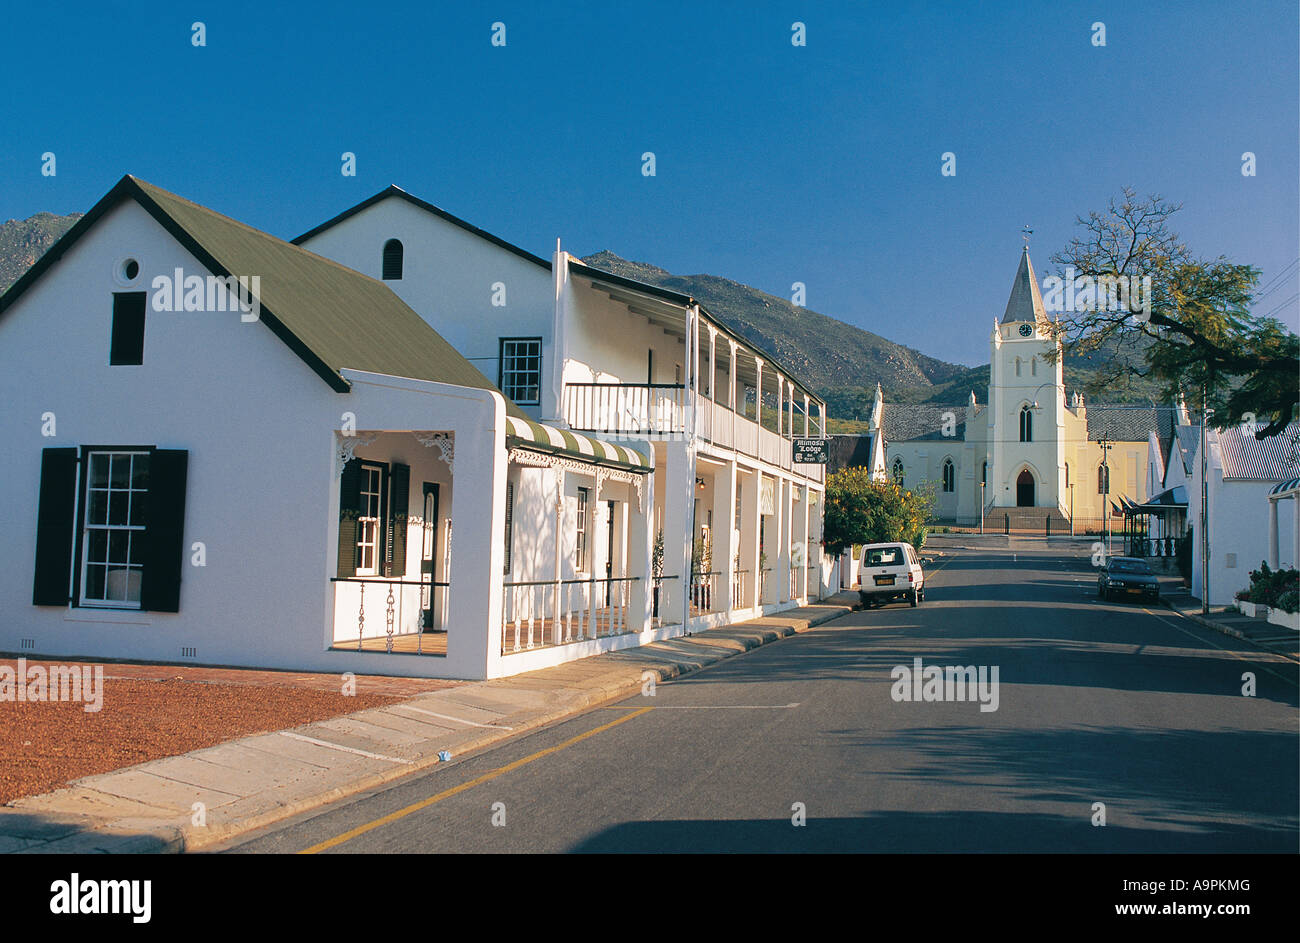 Ladismith South Africa  city pictures gallery : Ladismith Little Karoo Western Cape South Africa Stock Photo, Royalty ...